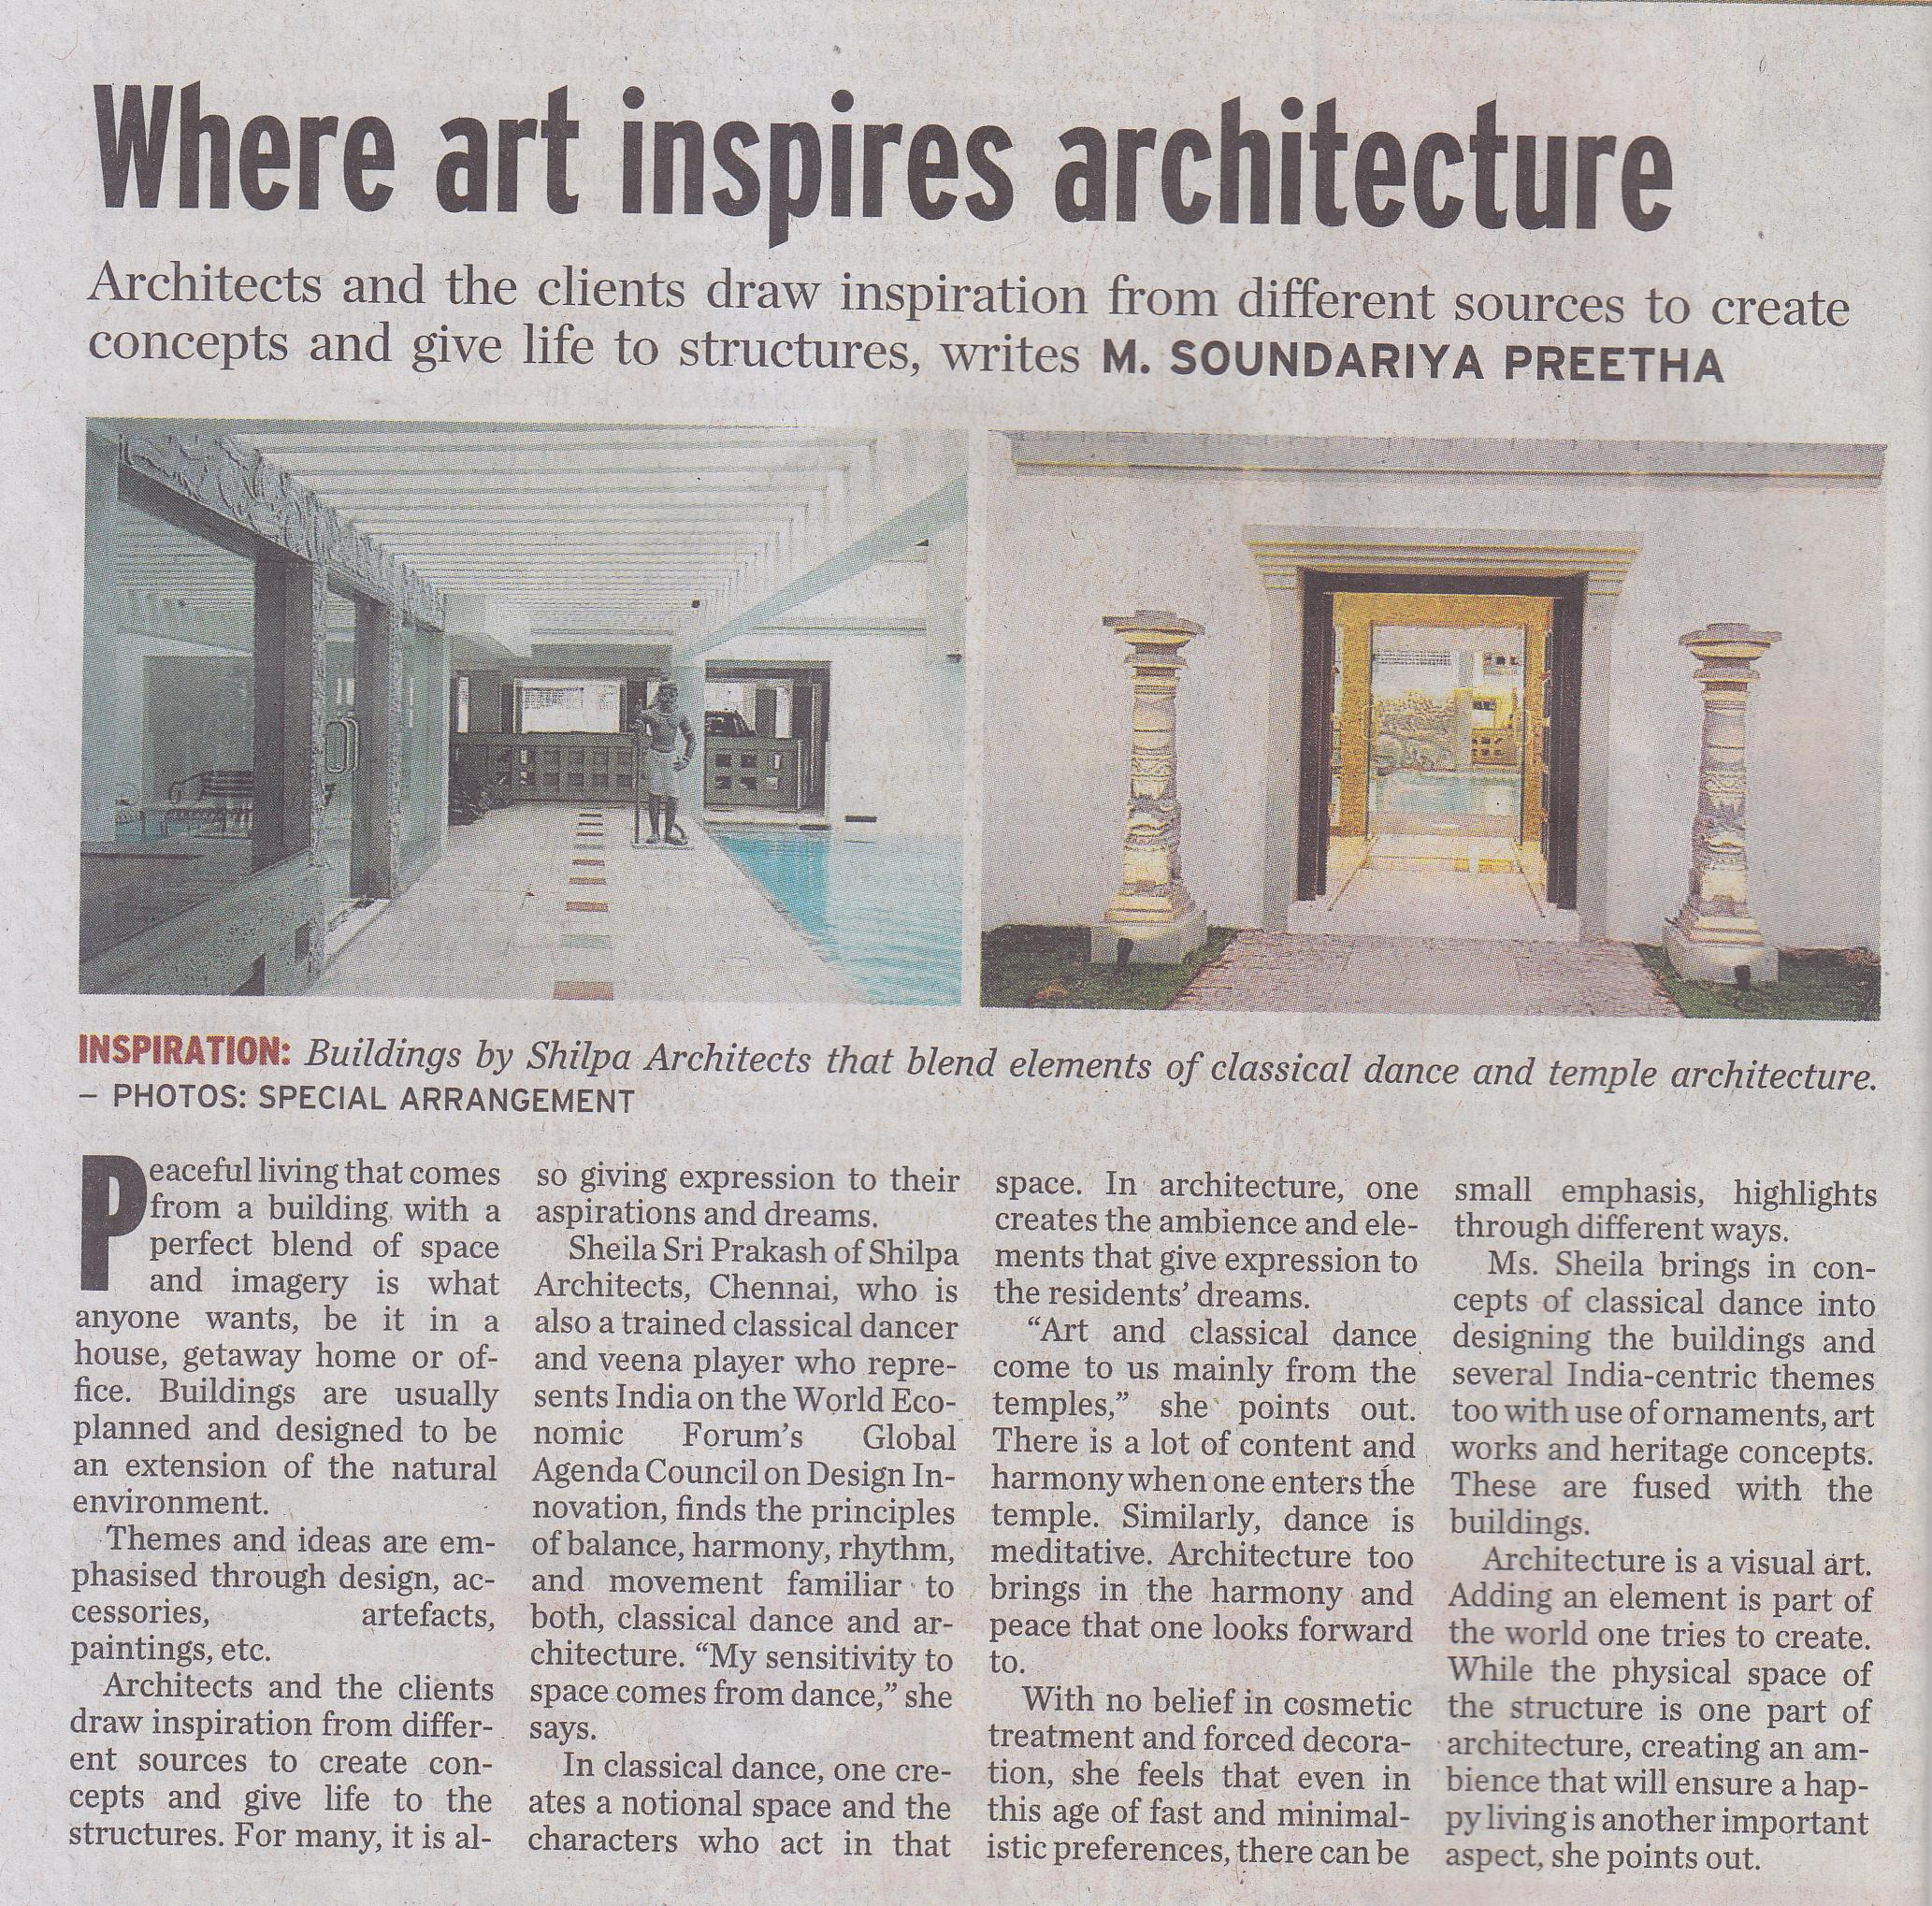 The Hindu, 10 March 2012: Where art inspires architecture